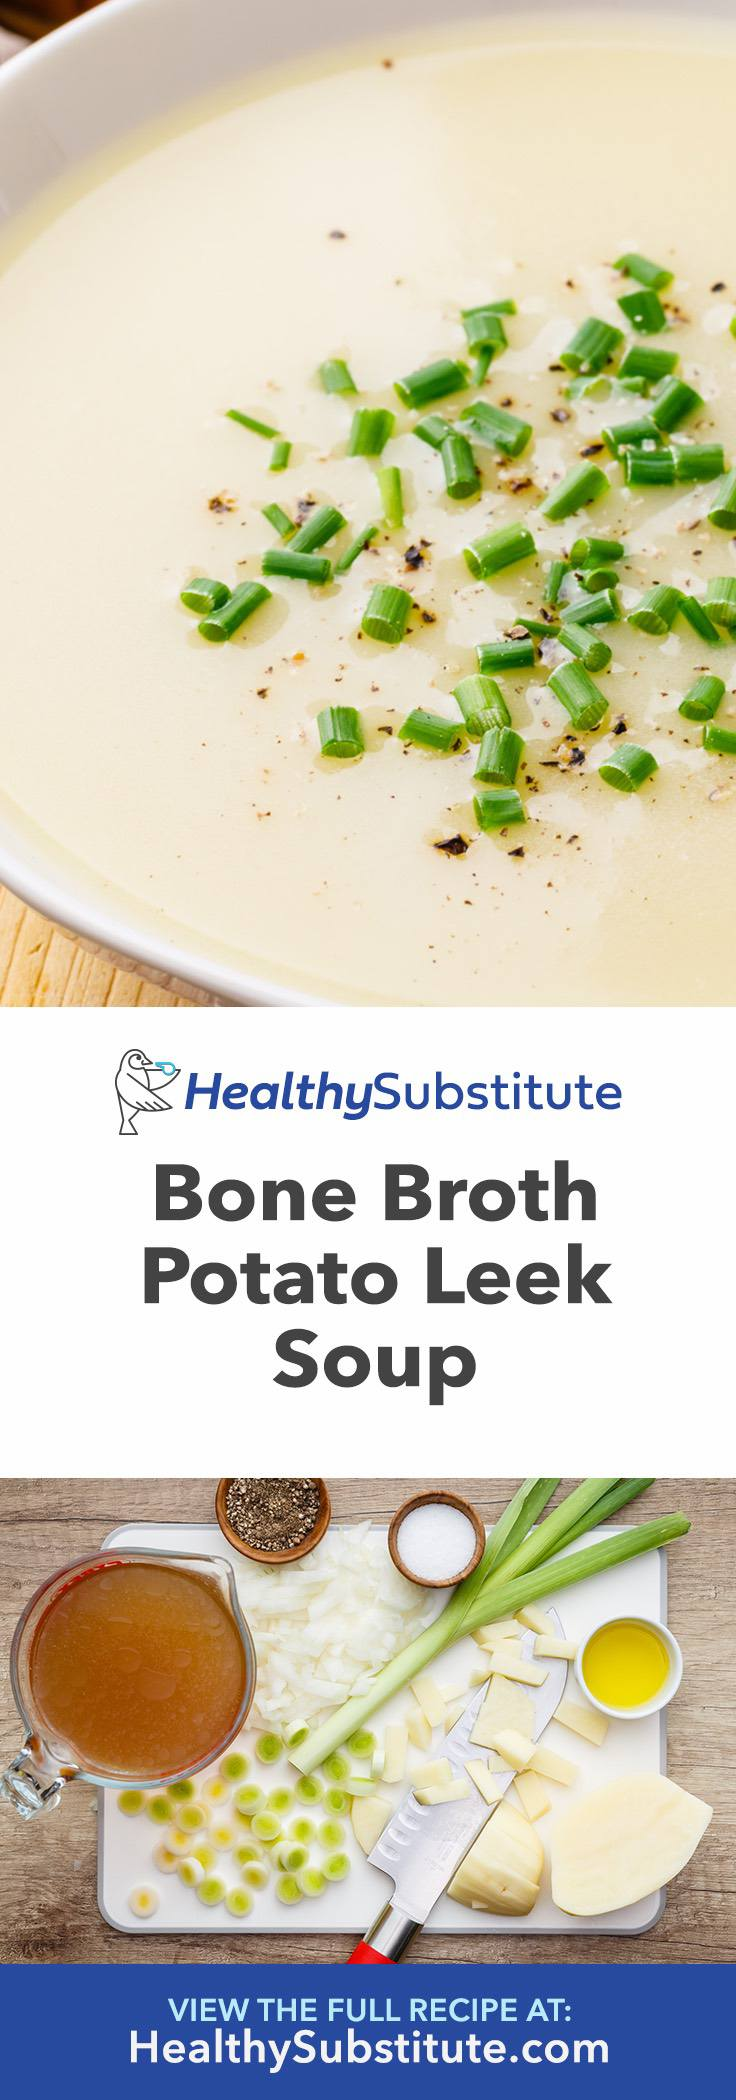 Bone Broth Potato Leek Soup for Energy and Weight Loss